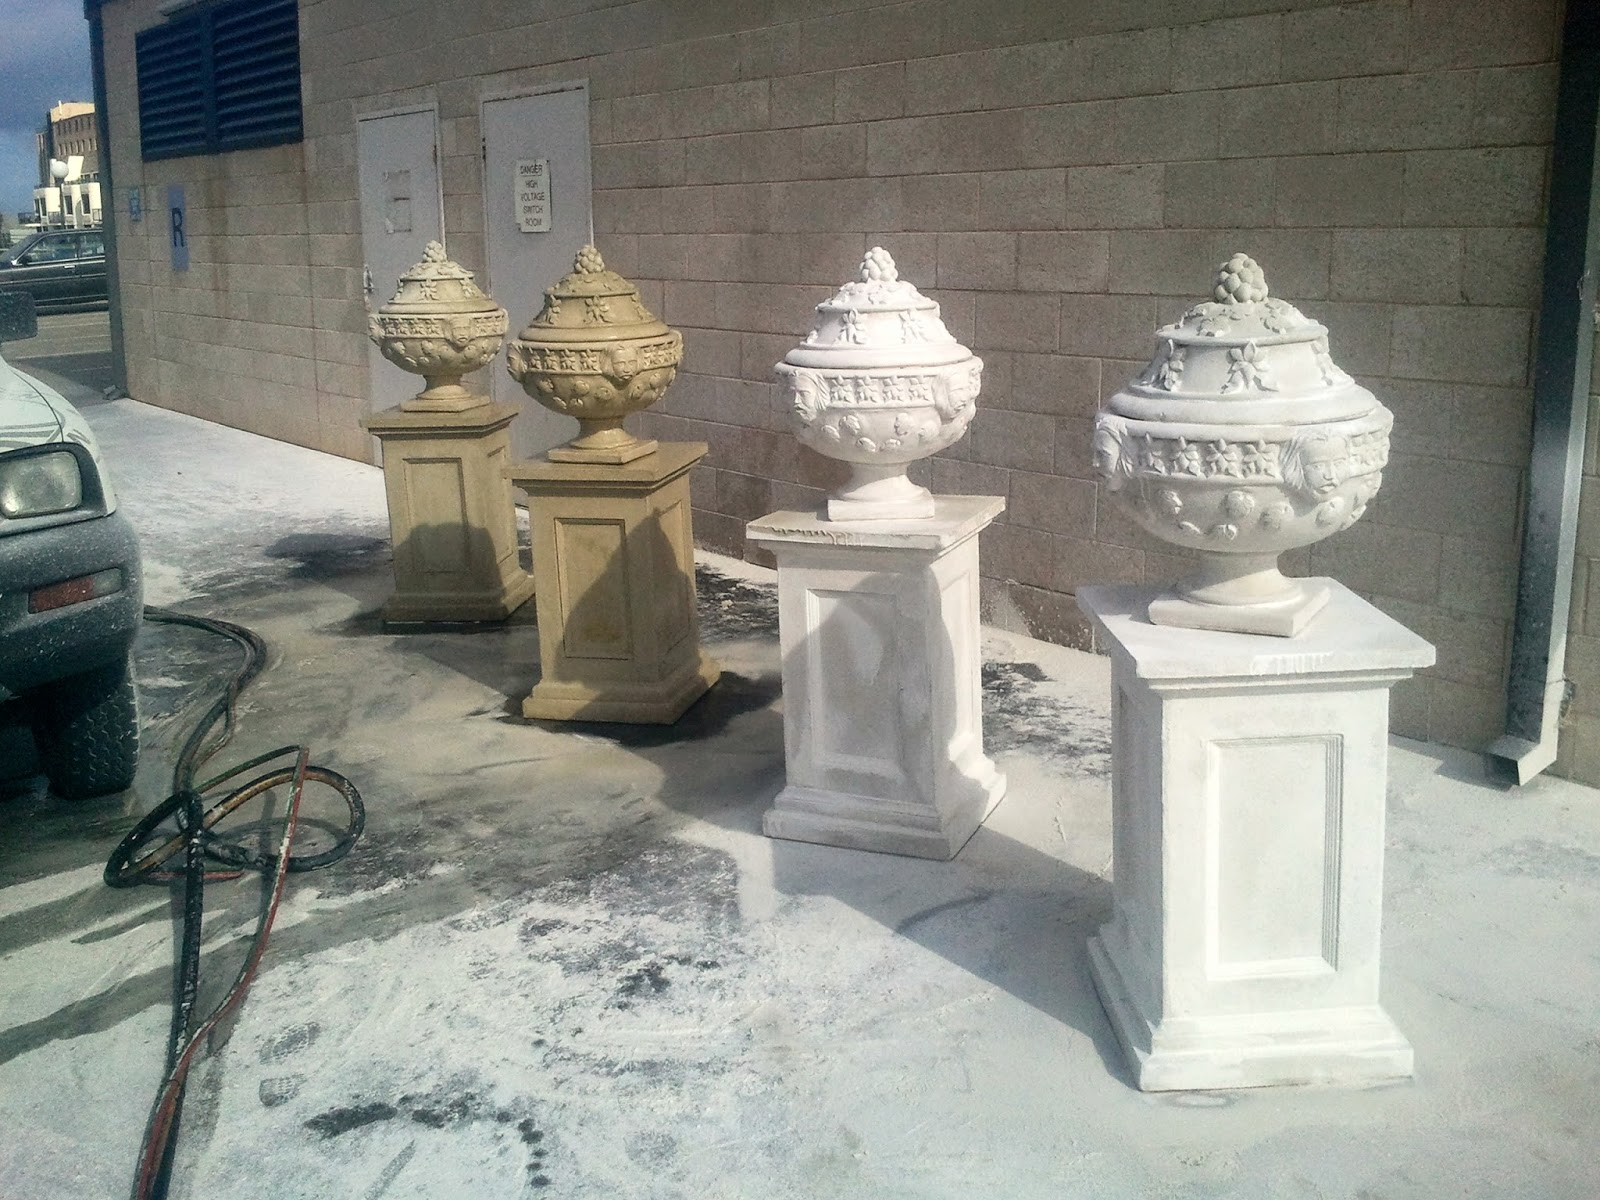 Architectural concrete and garden statuary are brought back to life through abrasive blasting